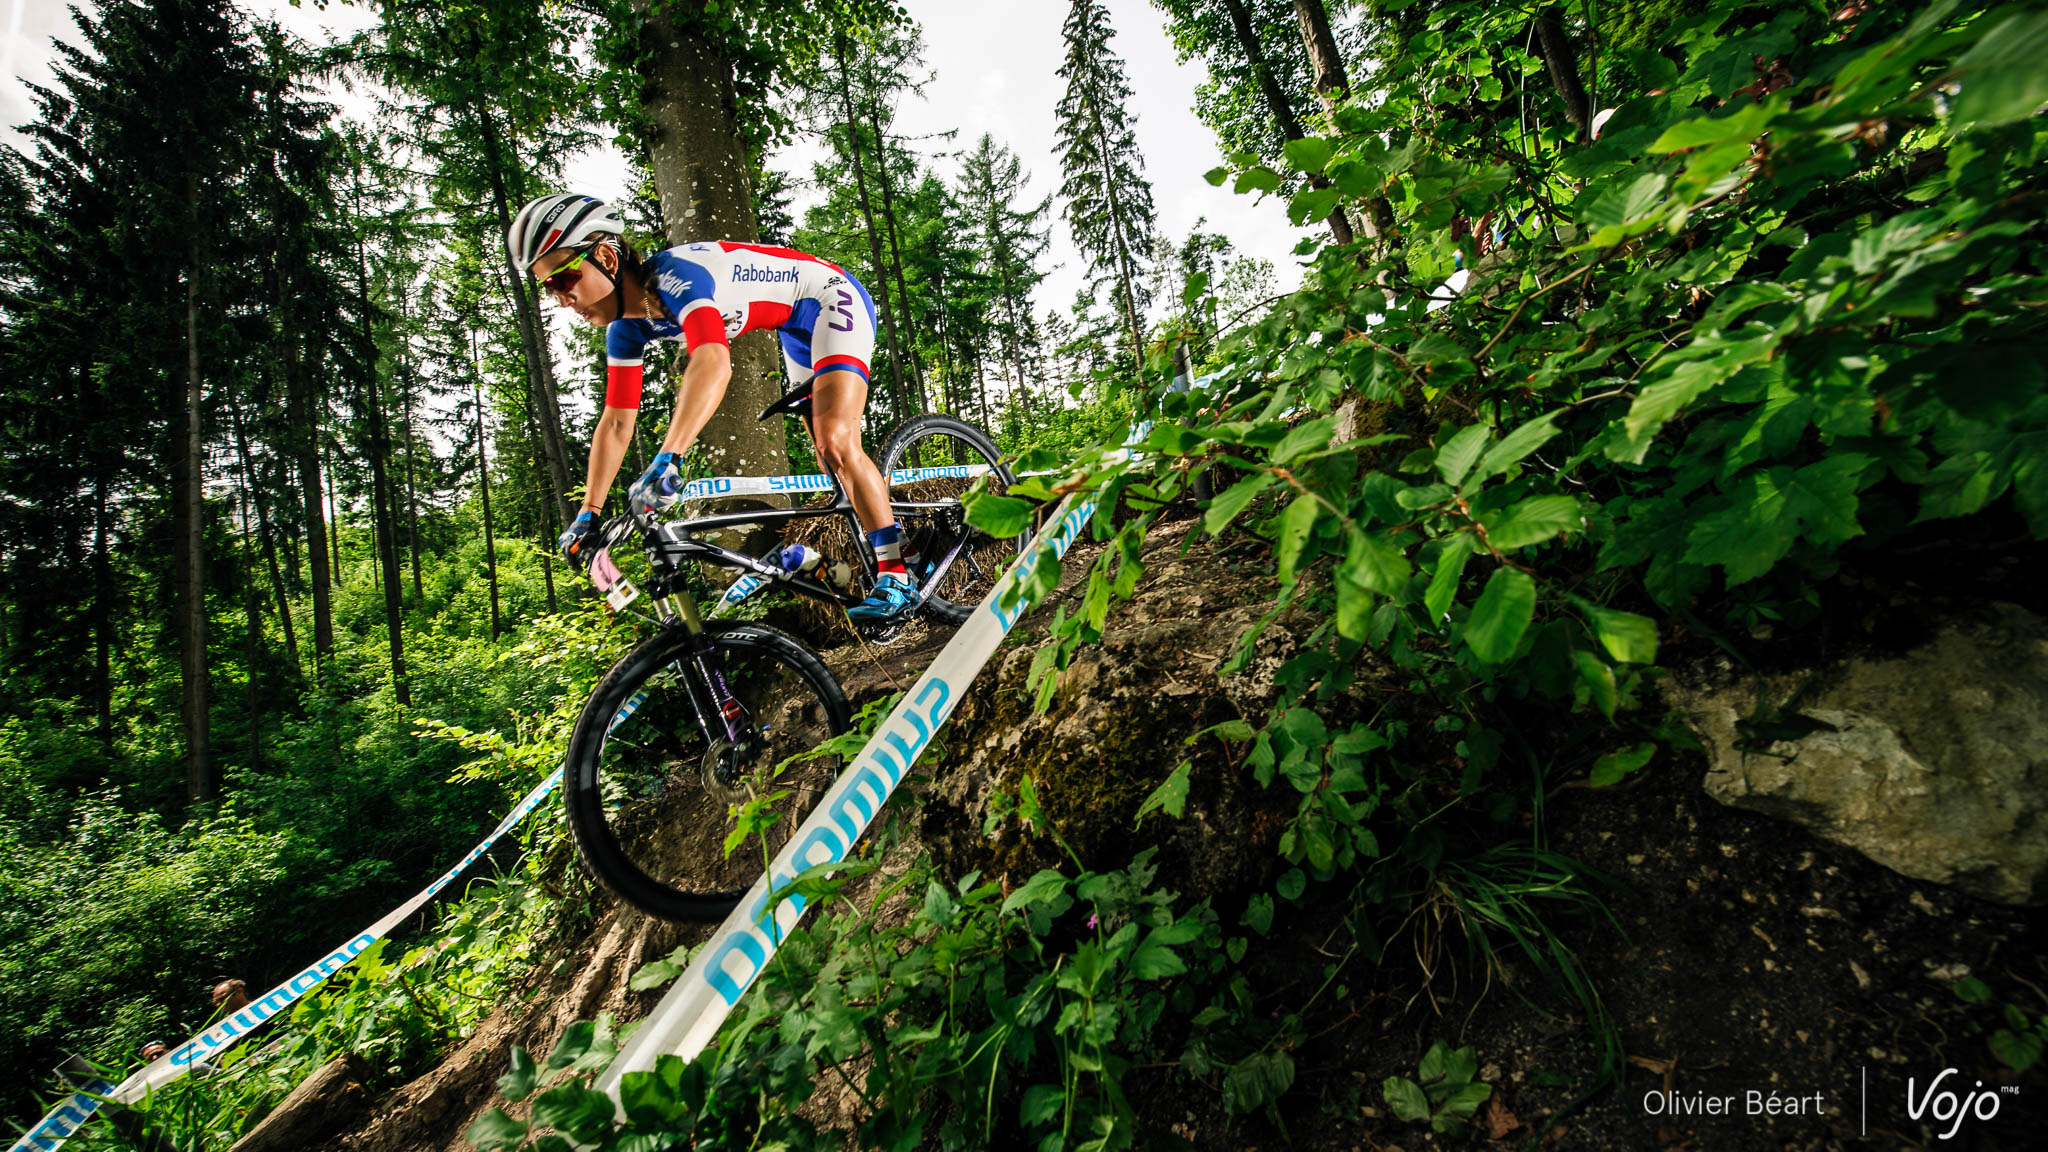 World_Cup_Albstadt_2015_Women_Neff_Dahle_Pendrel_feat_Copyright_OBeart_VojoMag-5